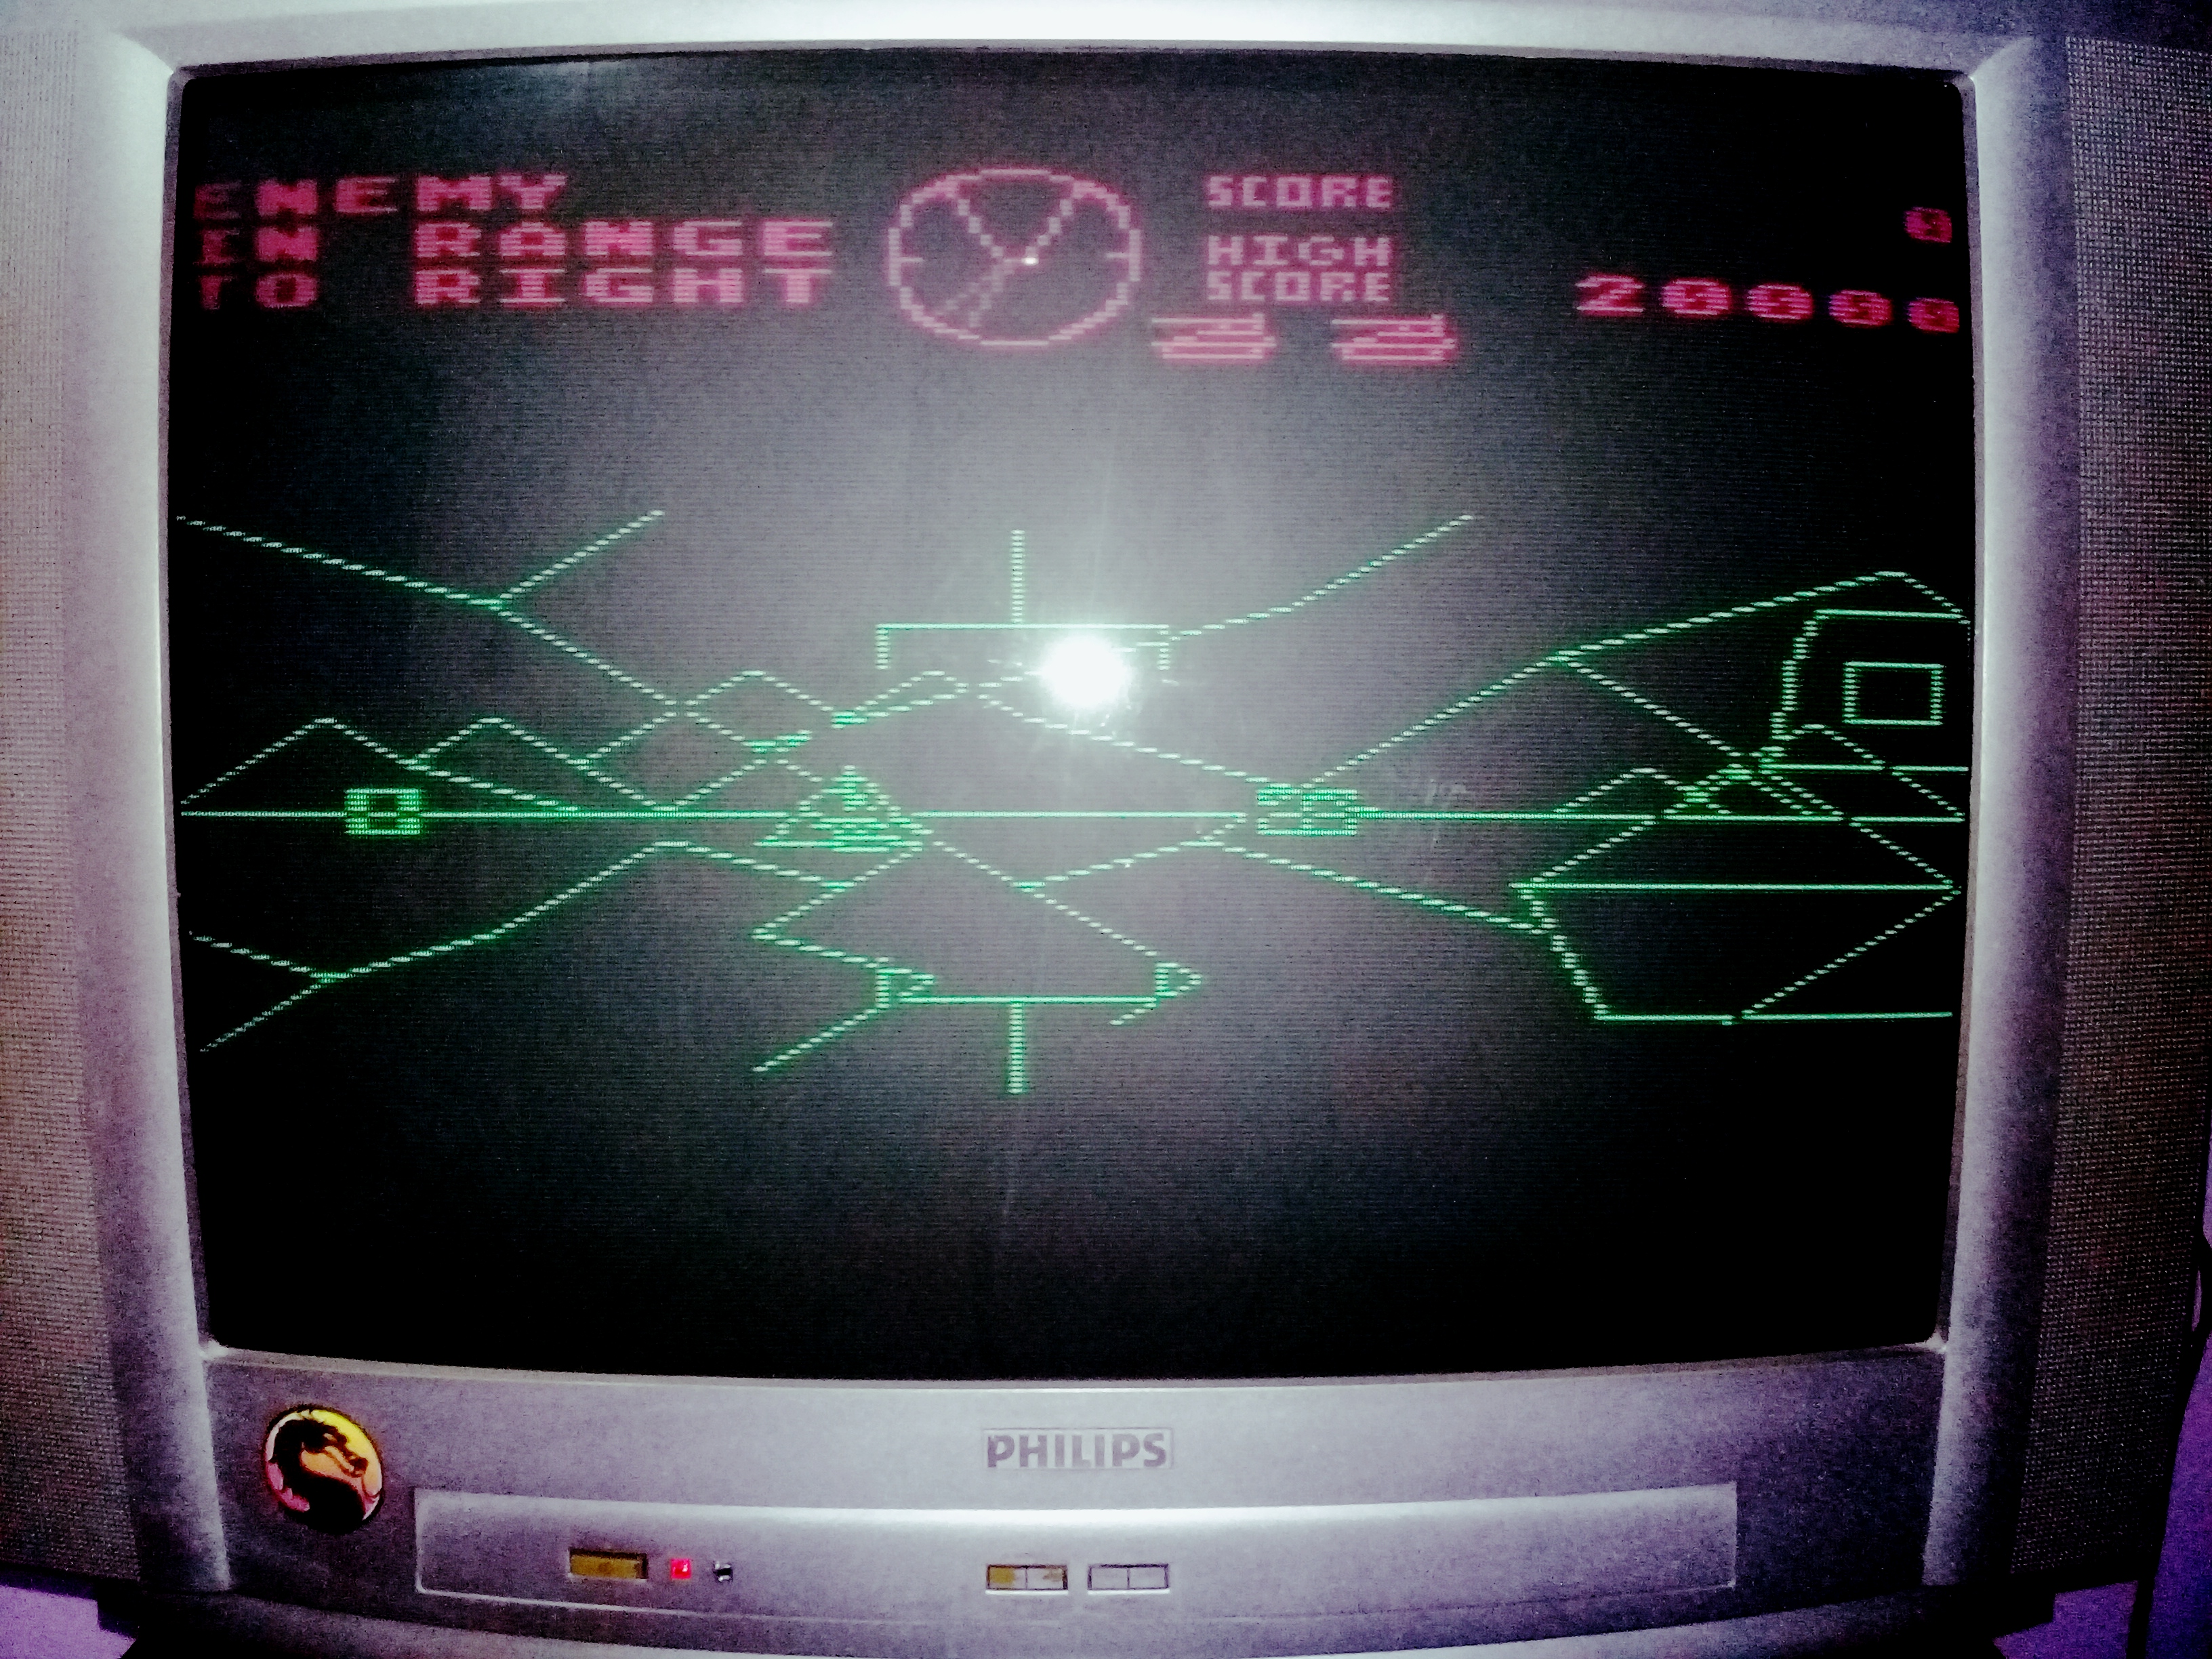 omargeddon: Battlezone [Level 3] (Atari 400/800/XL/XE) 20,000 points on 2020-09-06 01:22:32